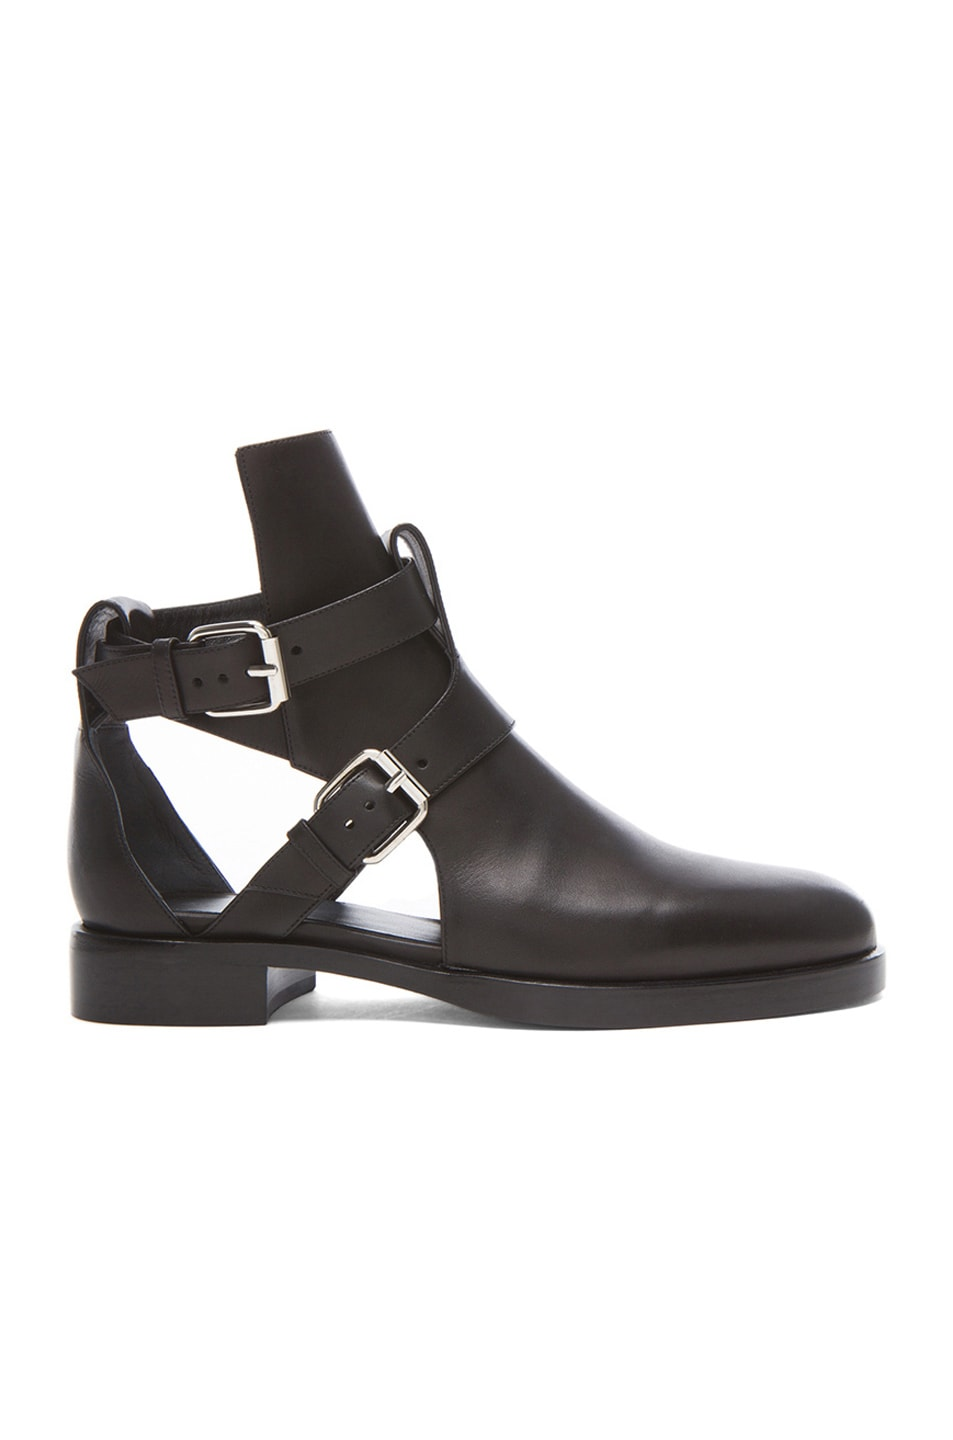 Image 1 of Pierre Hardy Strap Calfskin Leather Booties in Black